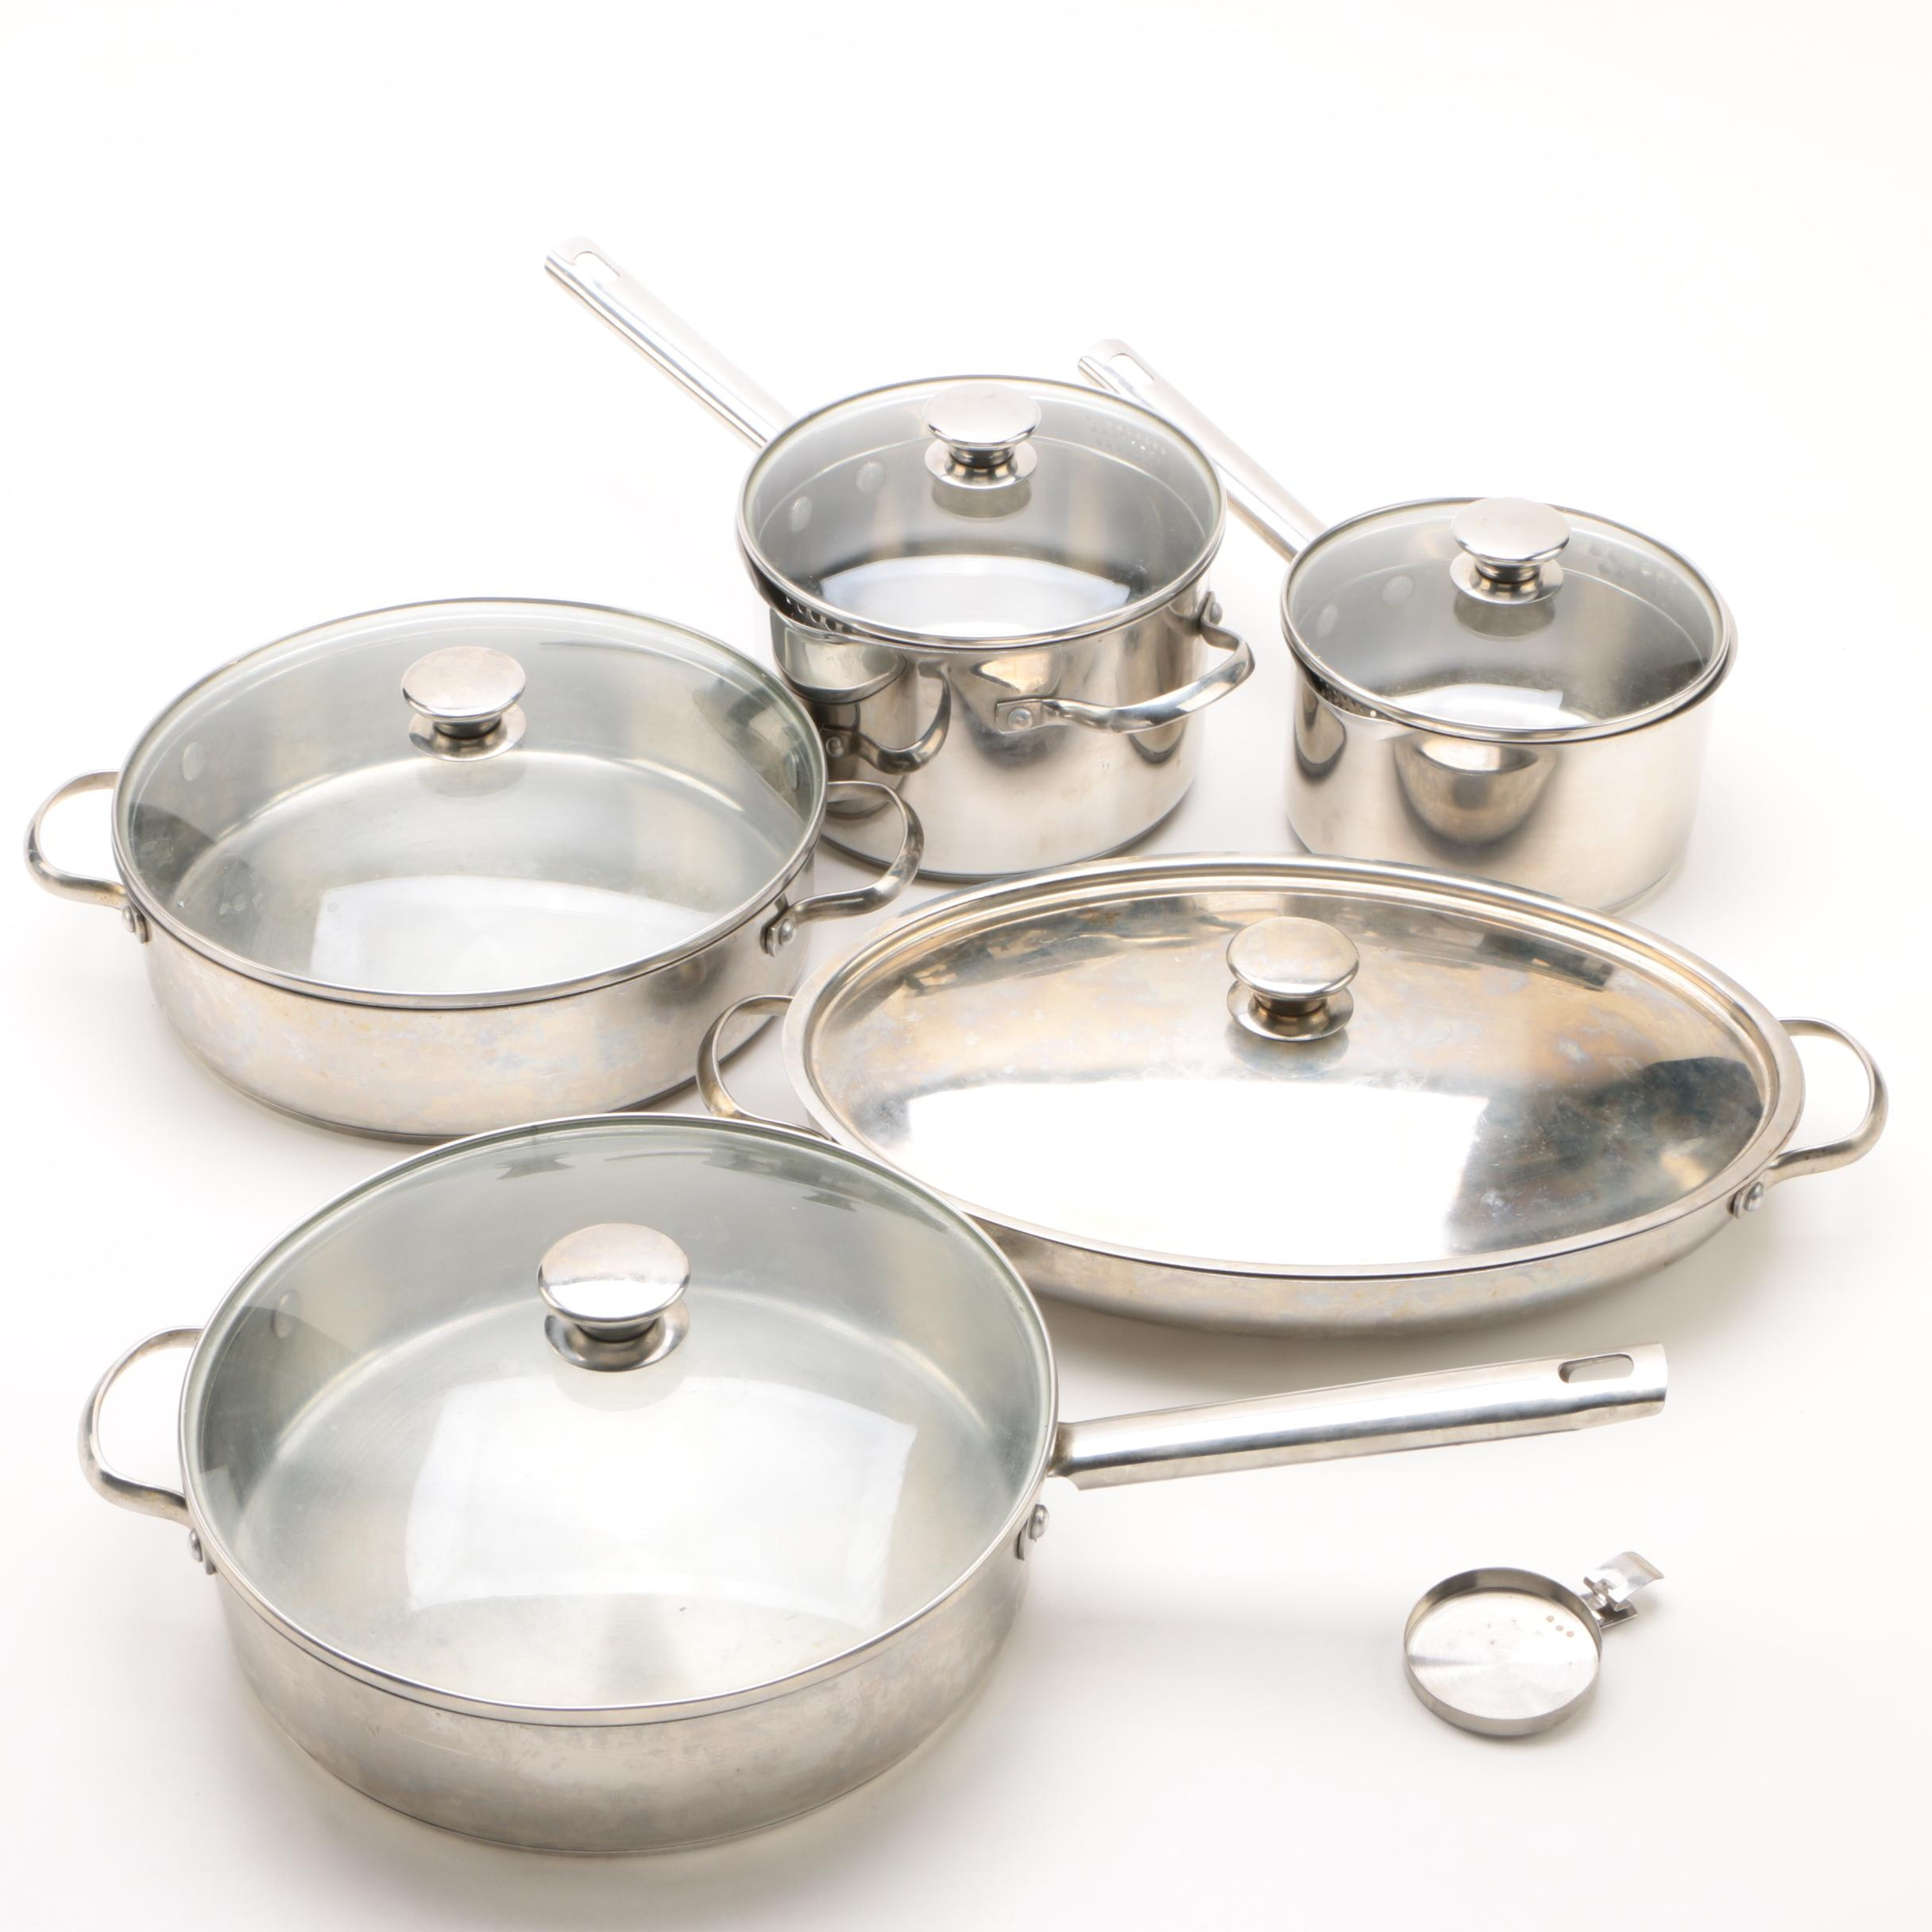 Wolfgang Puck Bistro Collection Stainless Steel Pots and Pans